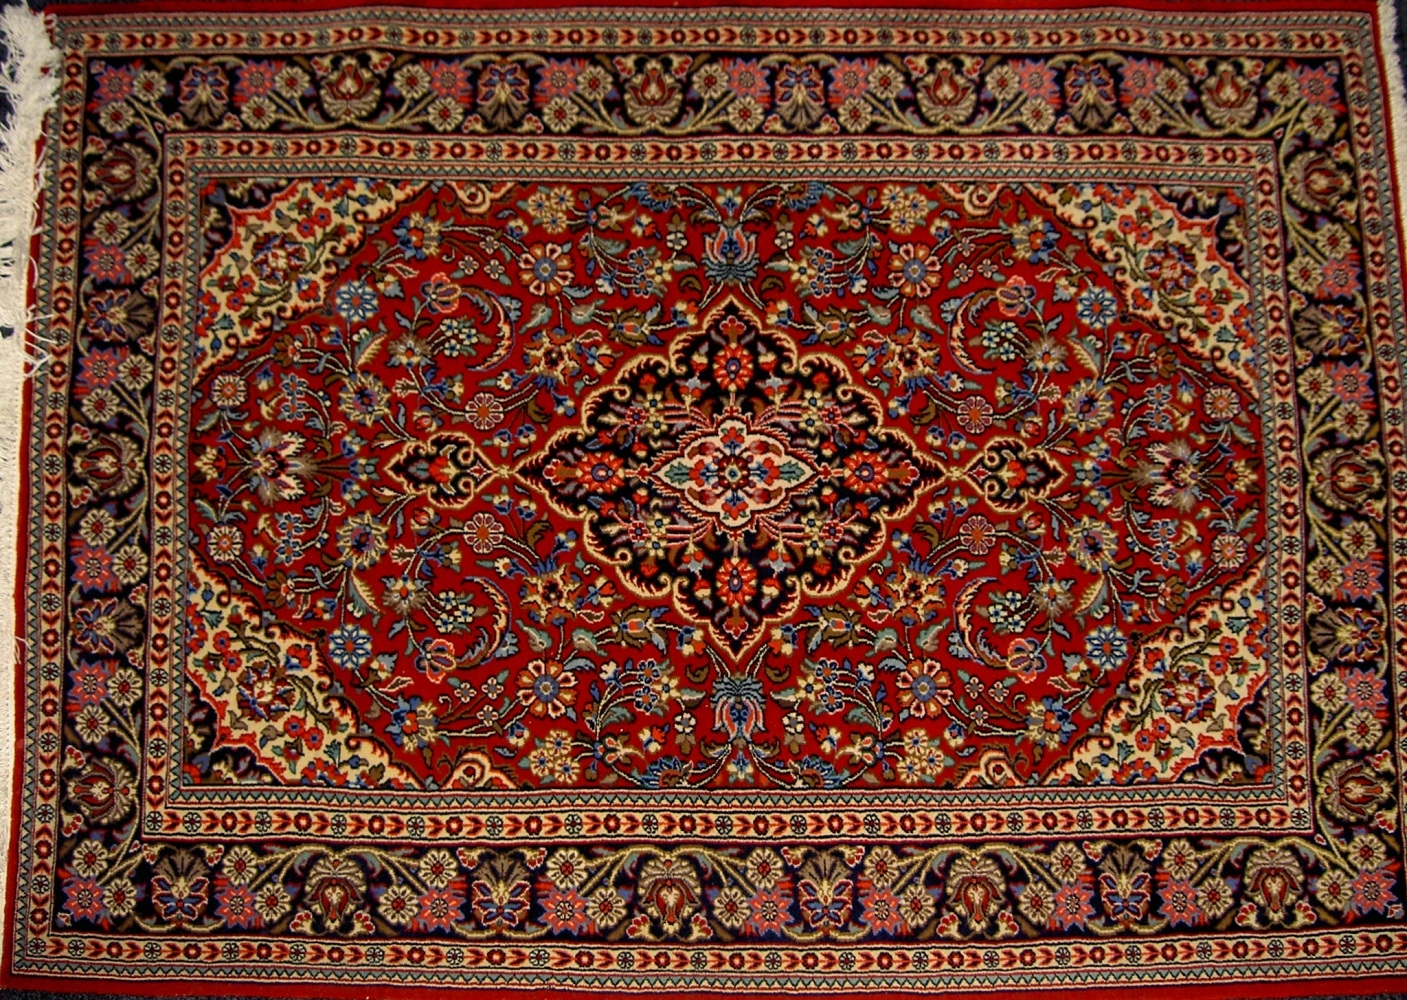 Persian Carpet Runners 8 Steps To Clean The Persian Carpet With Regard To Persian Carpet Runners (View 11 of 15)